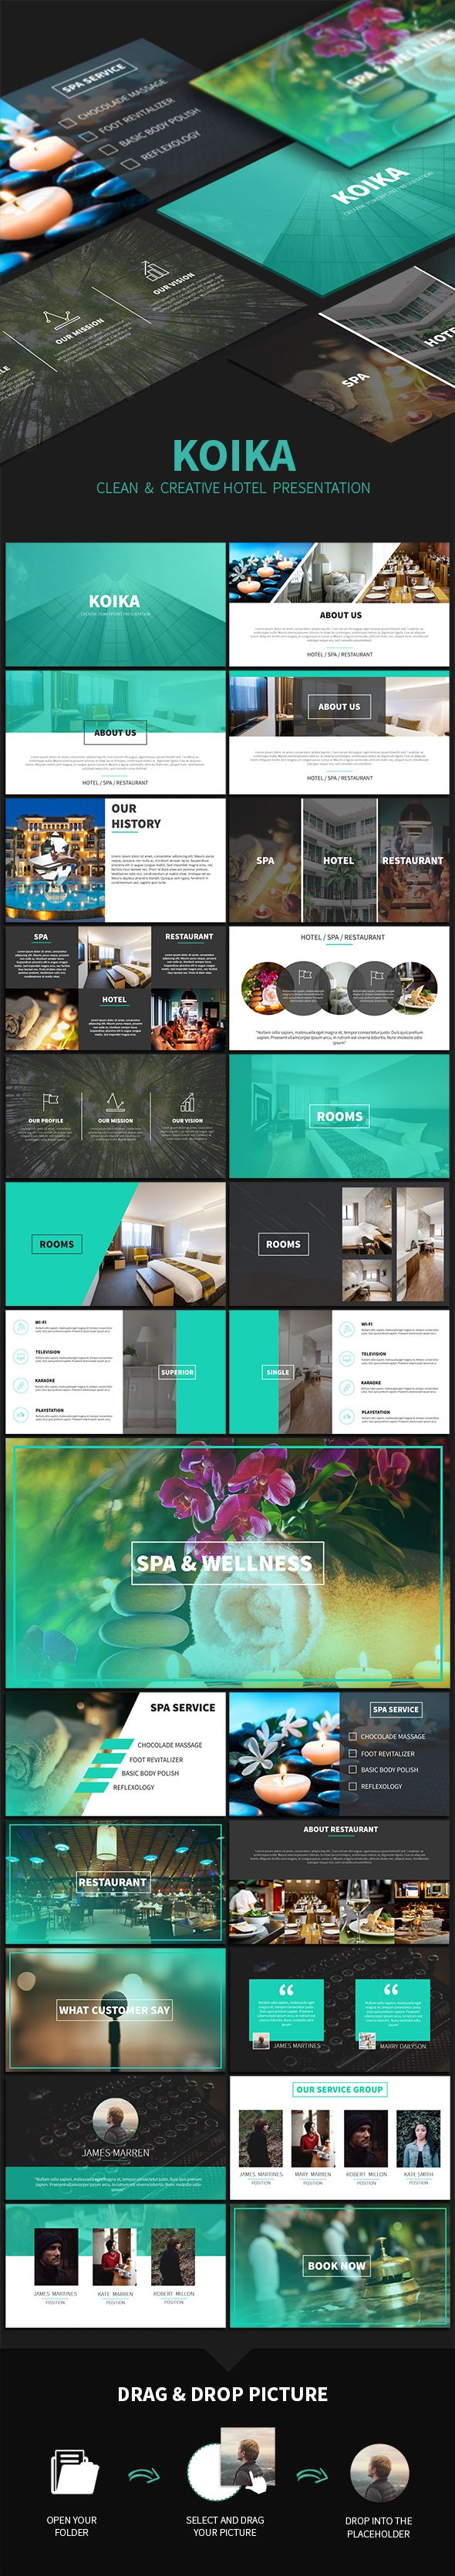 Koika Powerpoint Presentation Template